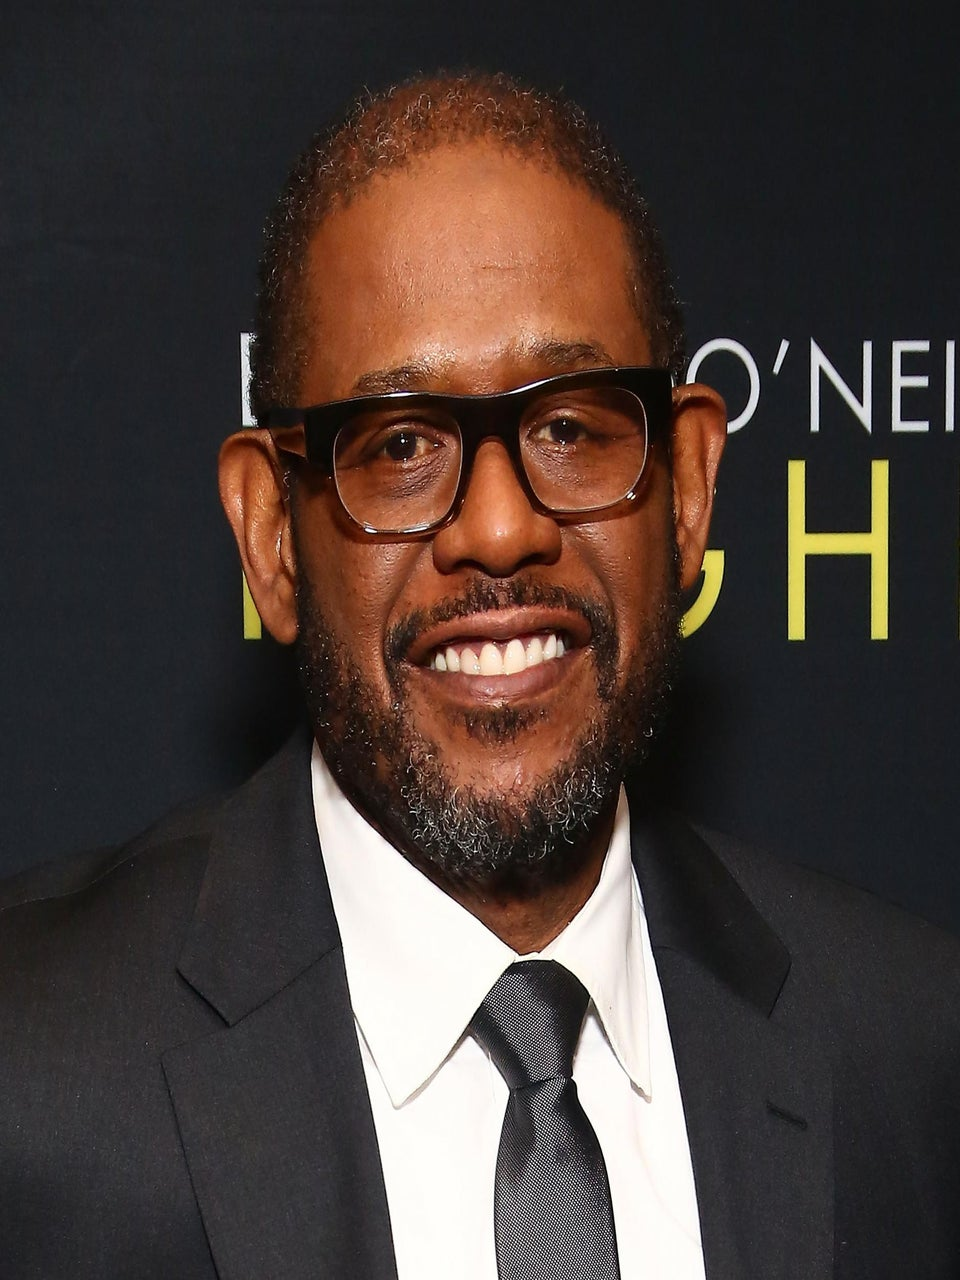 Forest Whitaker Joins the Star Wars Universe